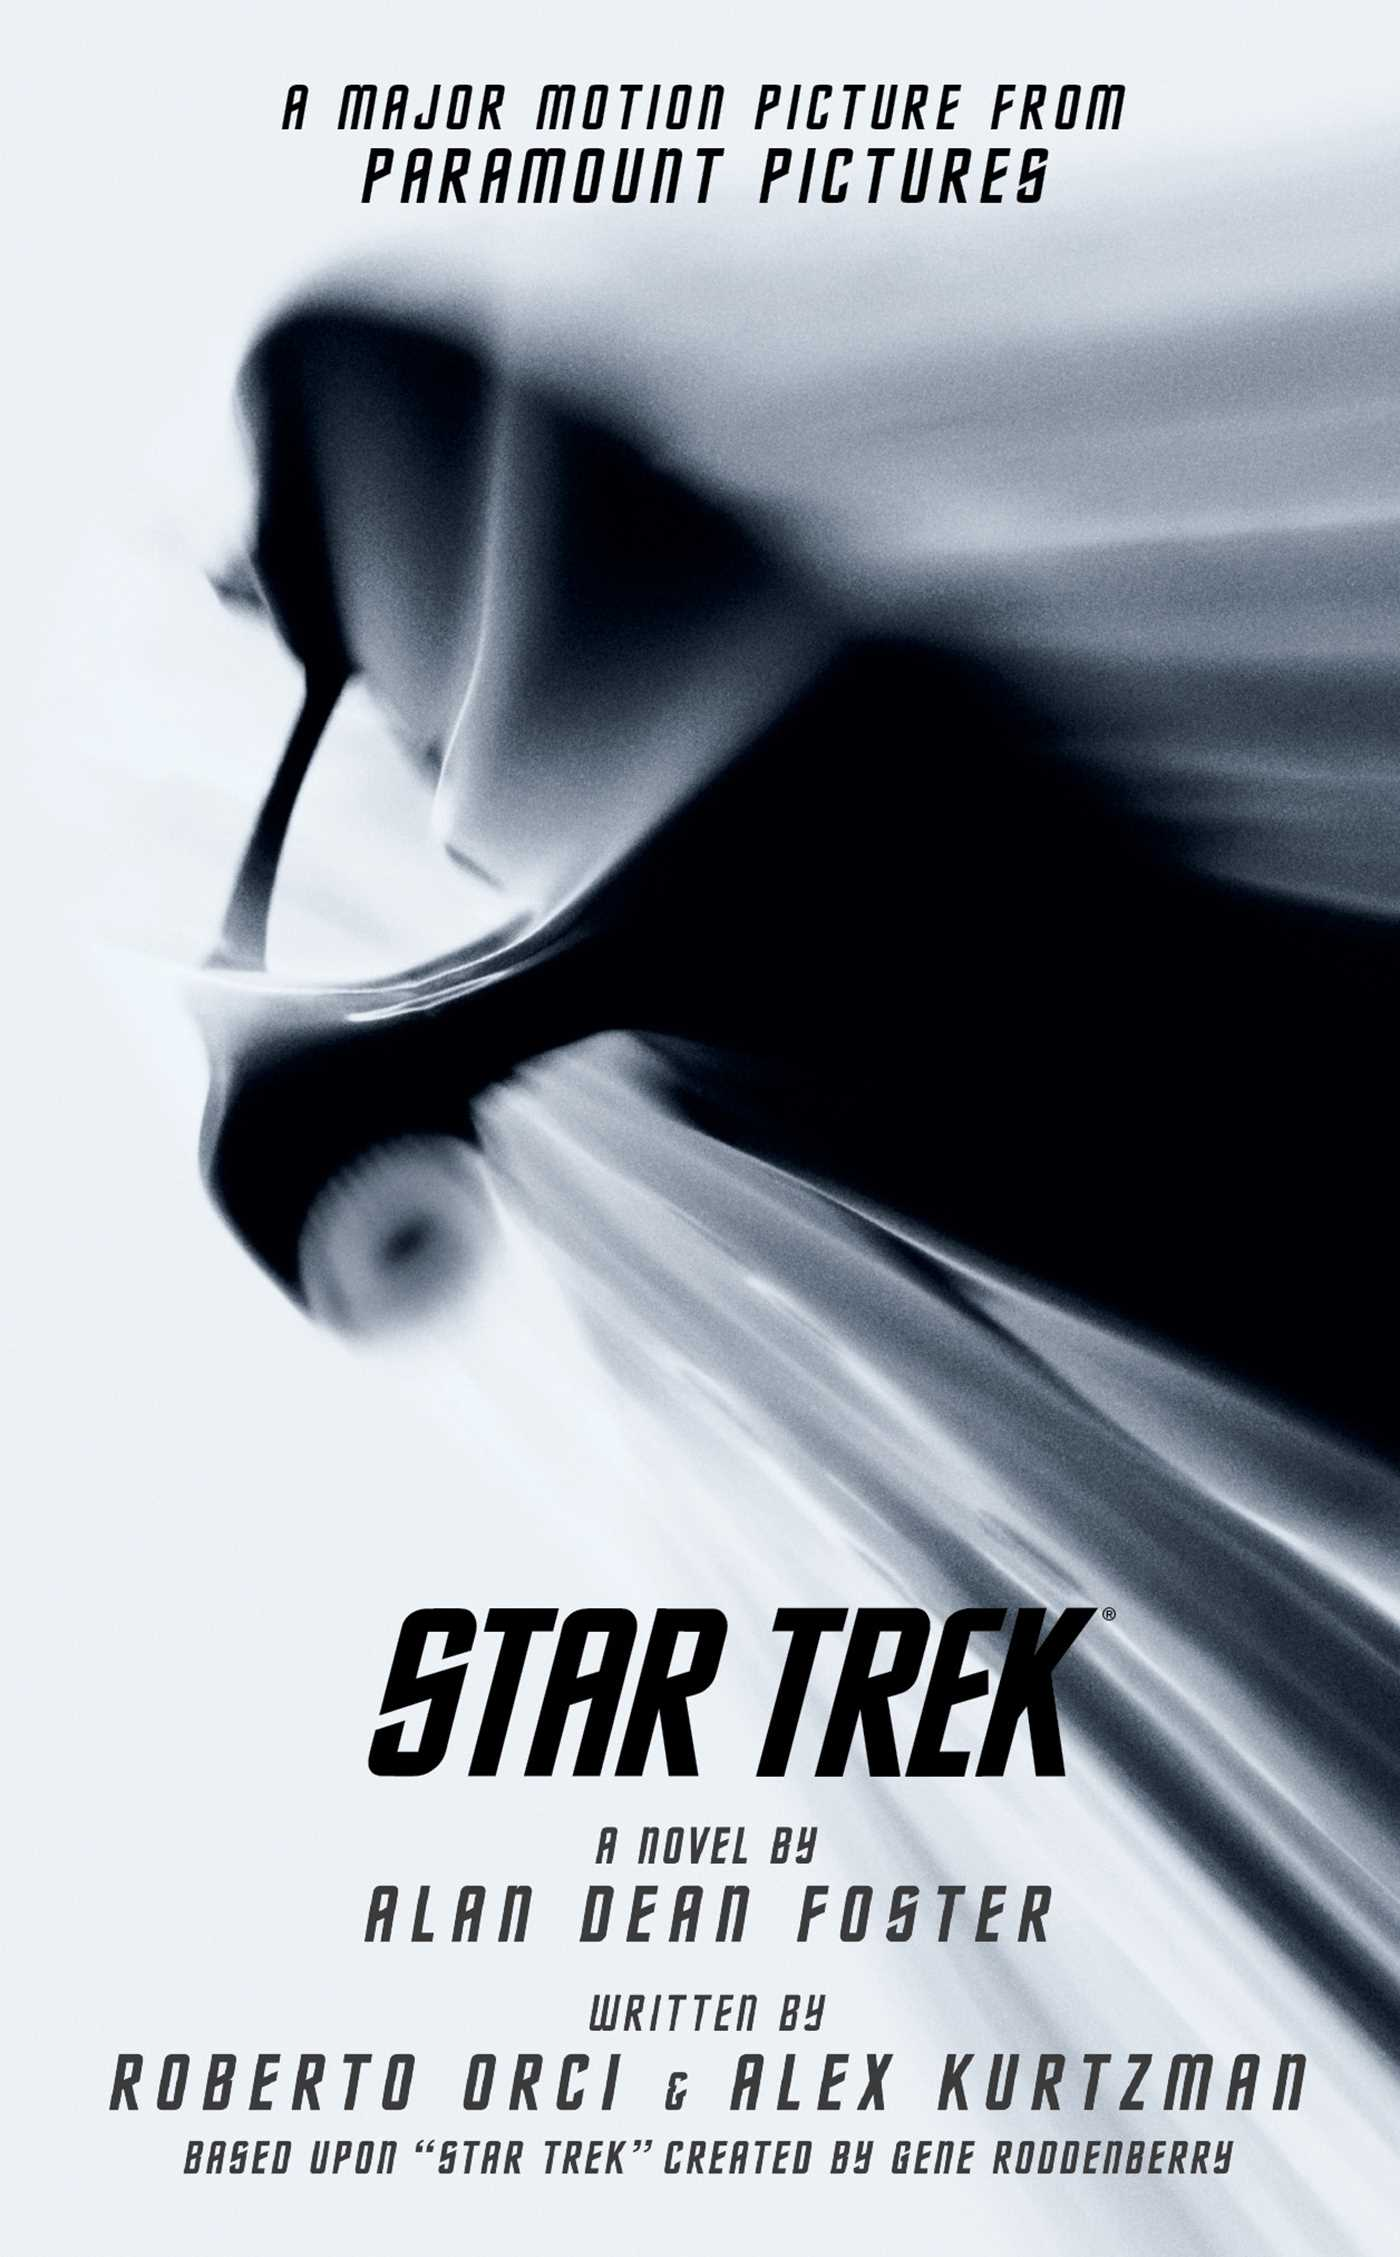 Star-trek-movie-tie-in-9781439163399_hr